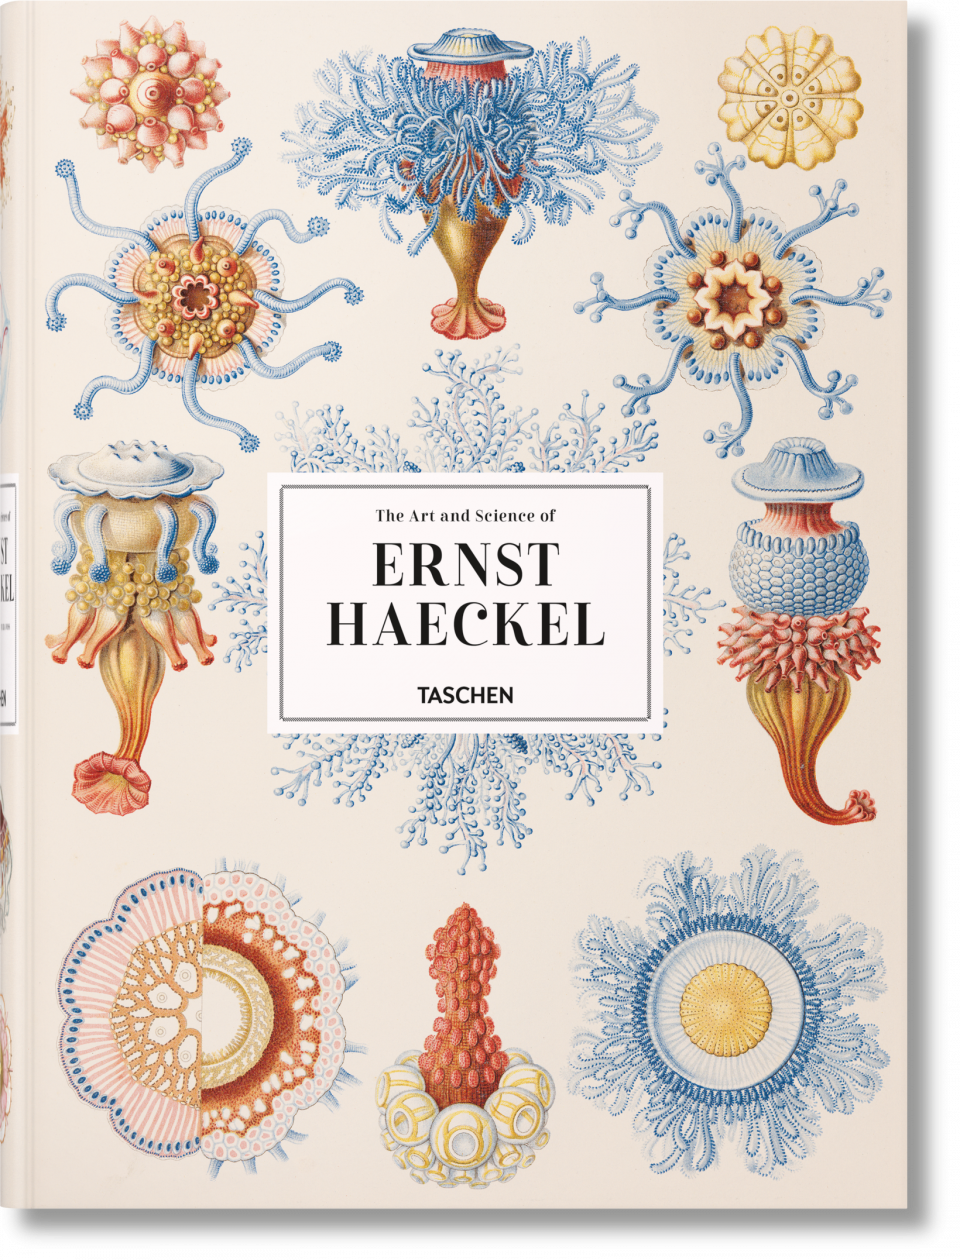 32739db408bce The Art and Science of Ernst Haeckel erschienen bei Taschen